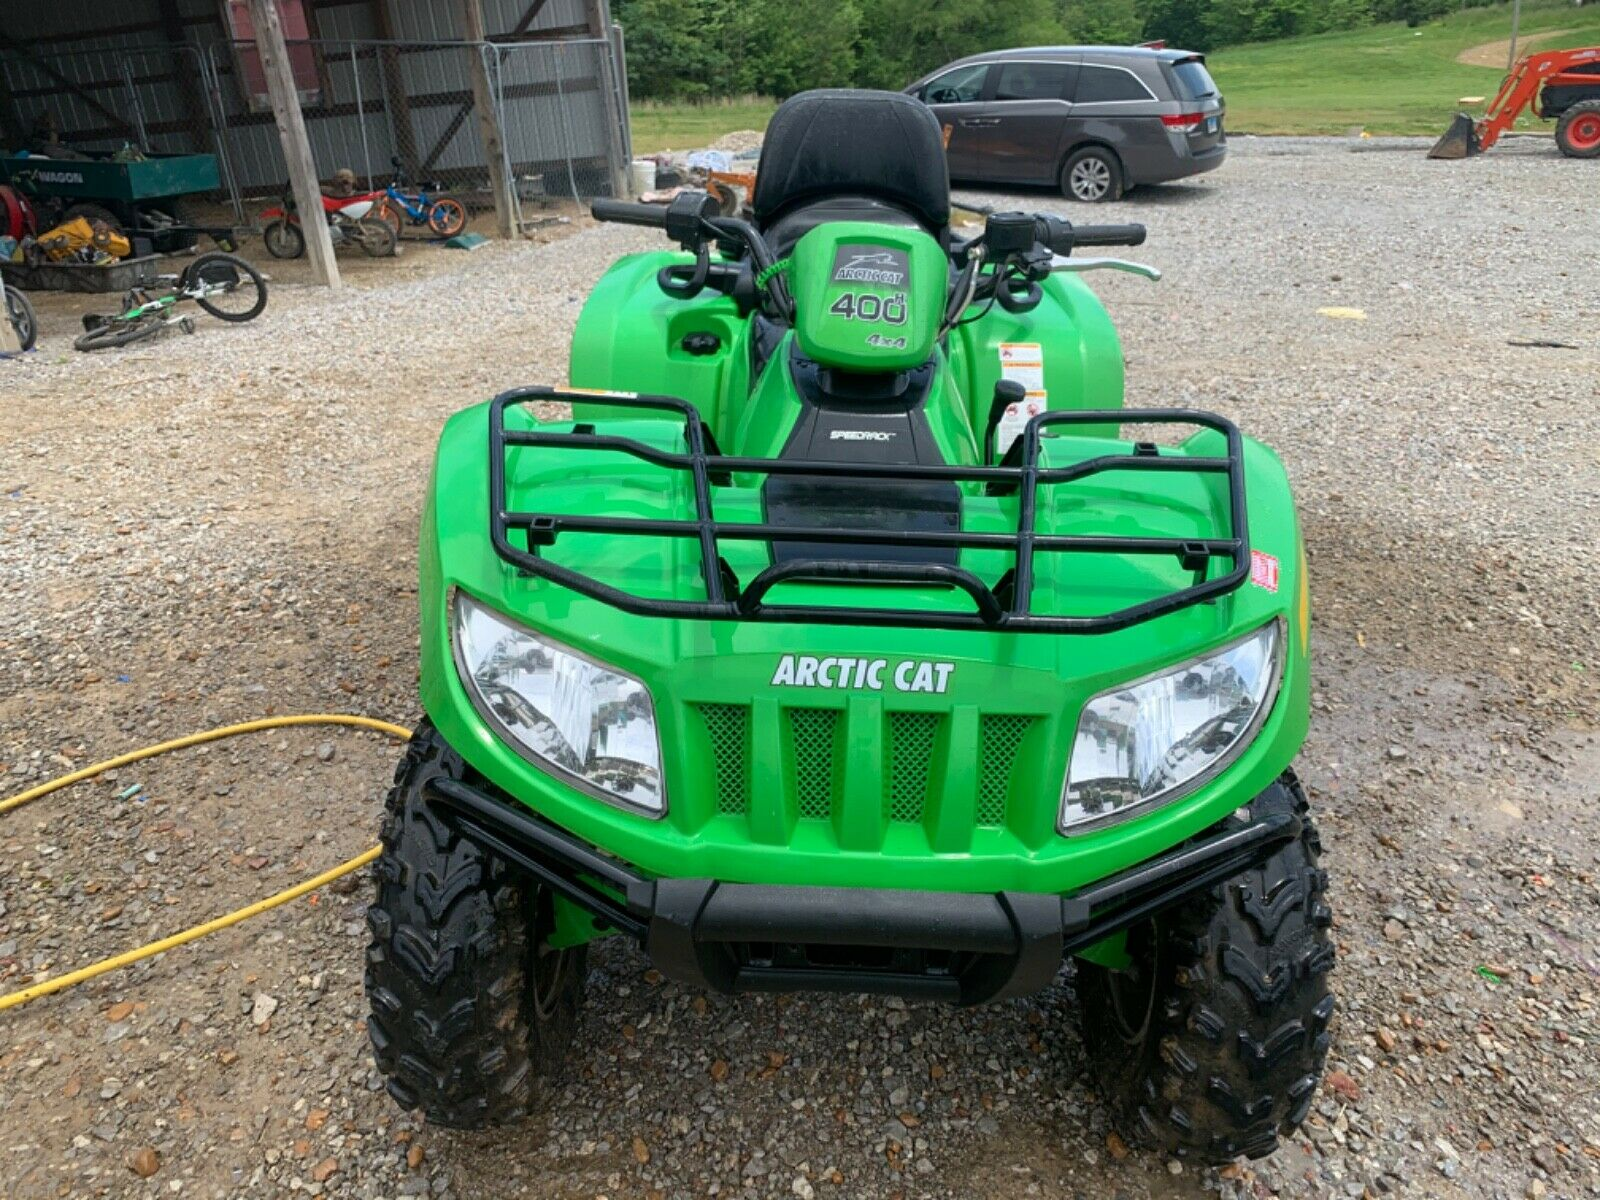 2009 Arctic Cat 400 H1 2 seater no reserve mechanics special